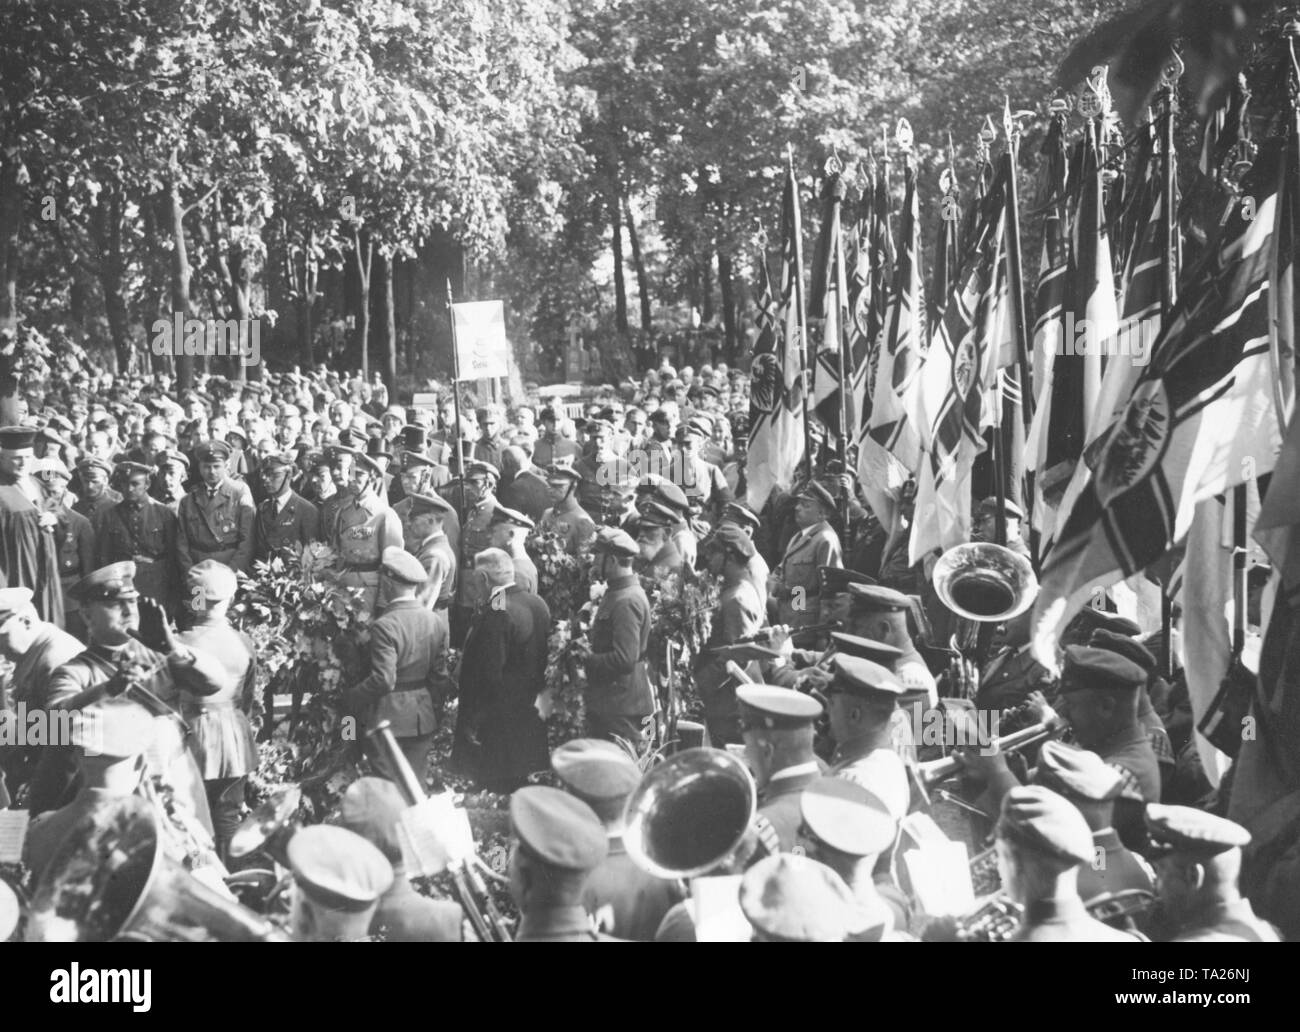 At the funeral of the Stahlhelm member Maurice August Hahn, who had been murdered by Communists, a mourning ceremony of the Stahlhelm was held in Friedrichsfelde cemetery. The deceased is honored with flags and a music band. - Stock Image